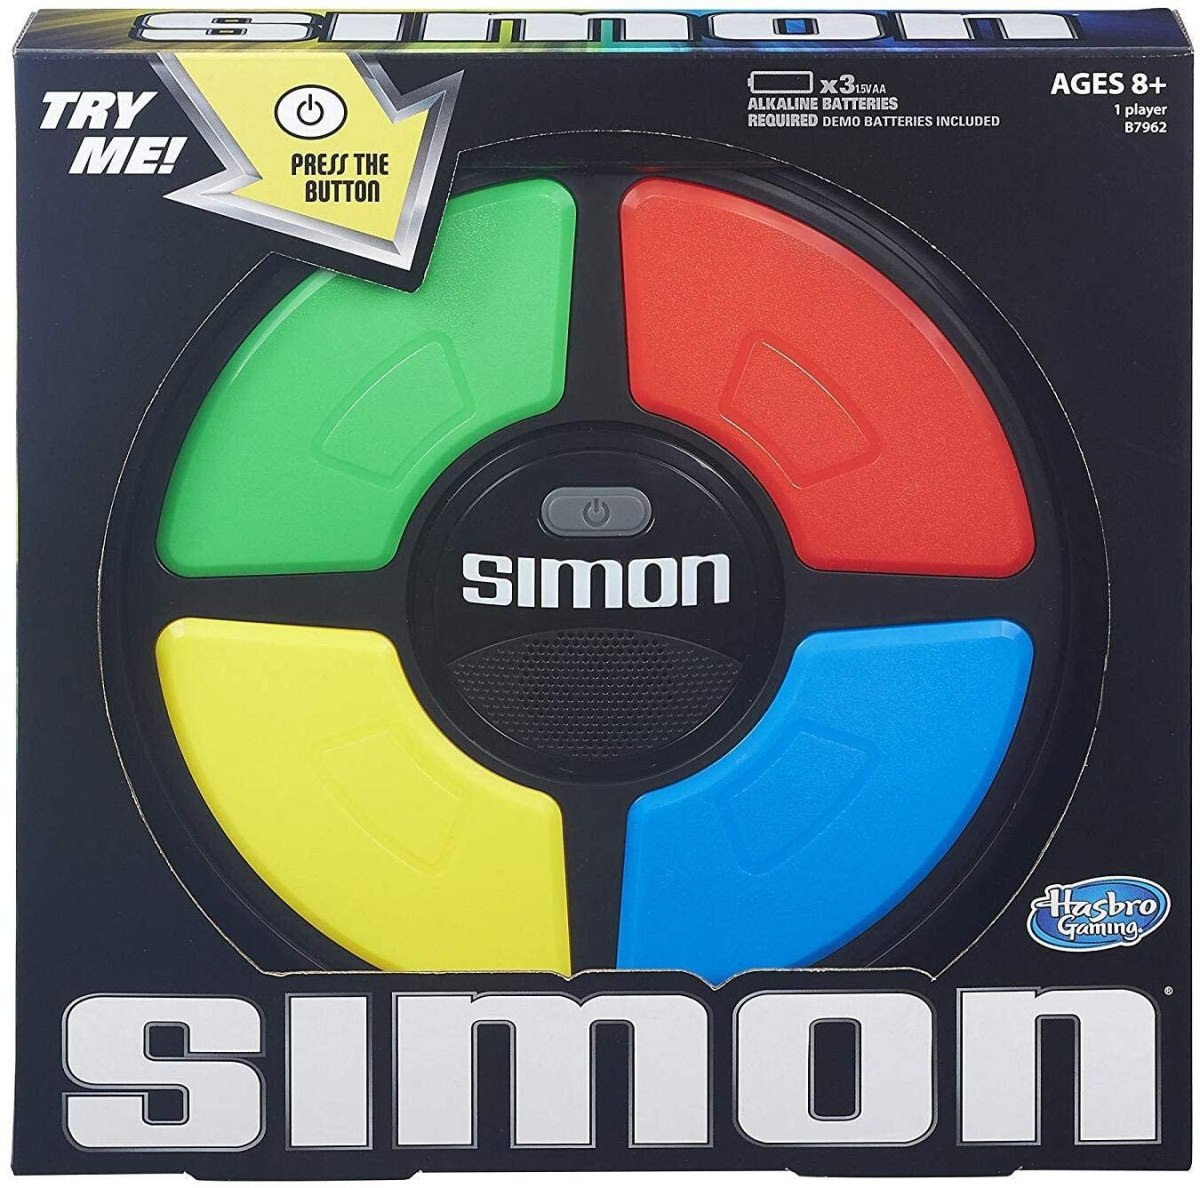 simon retro game